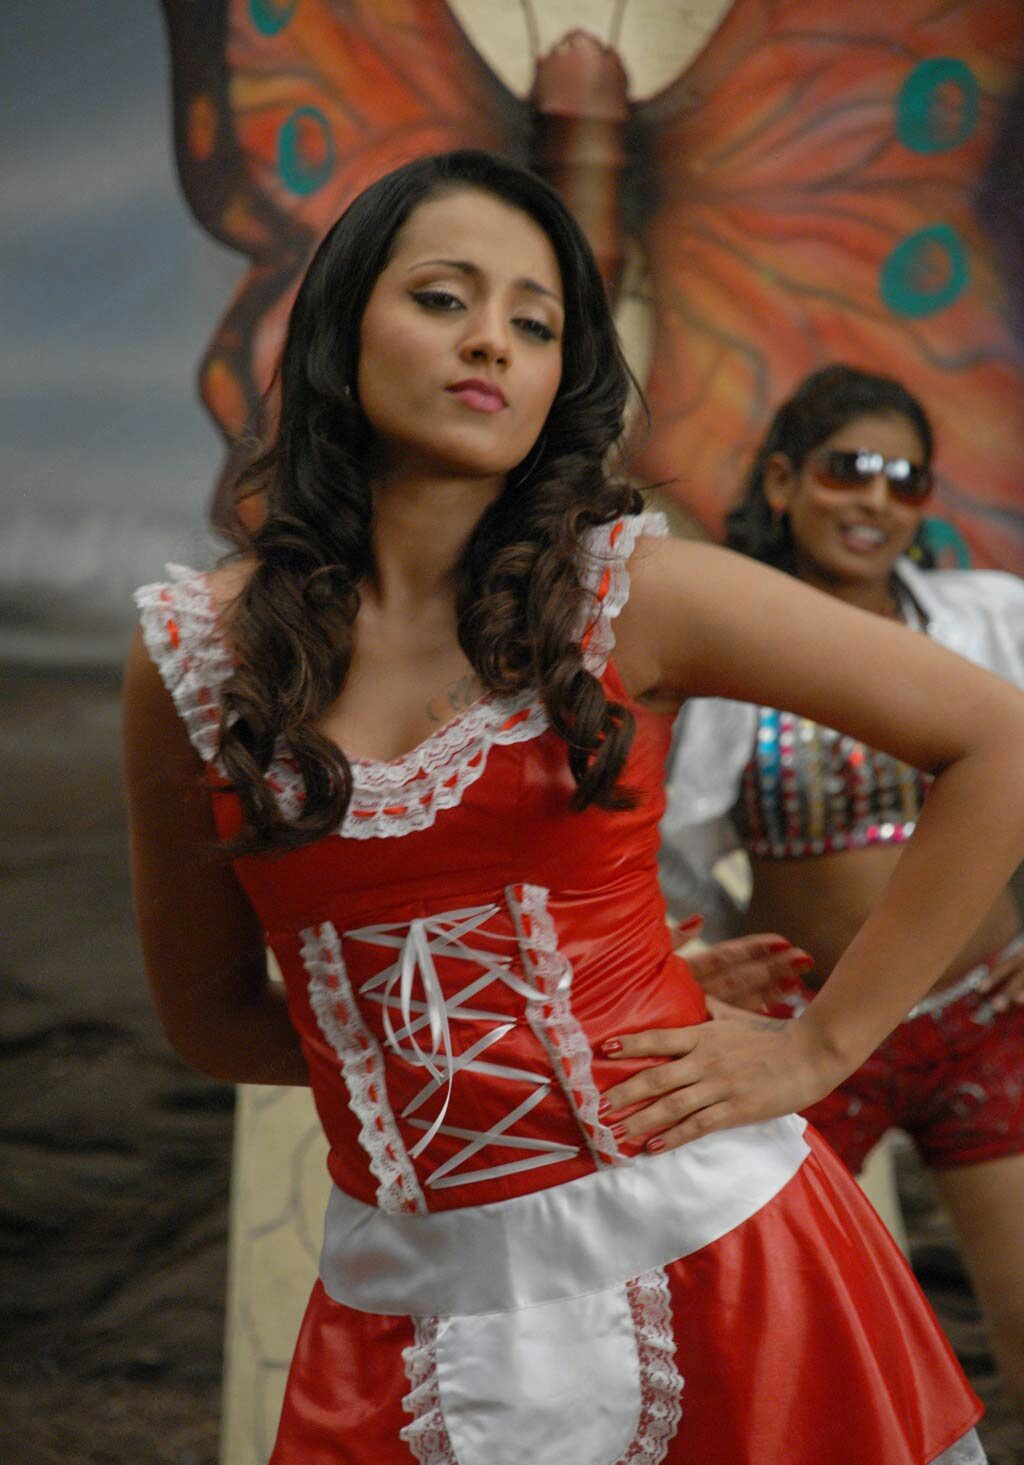 Most Sexiest 100 Sexiest Photos Of Trisha Krishnan Hot Navel  Cleavage Collection -2040